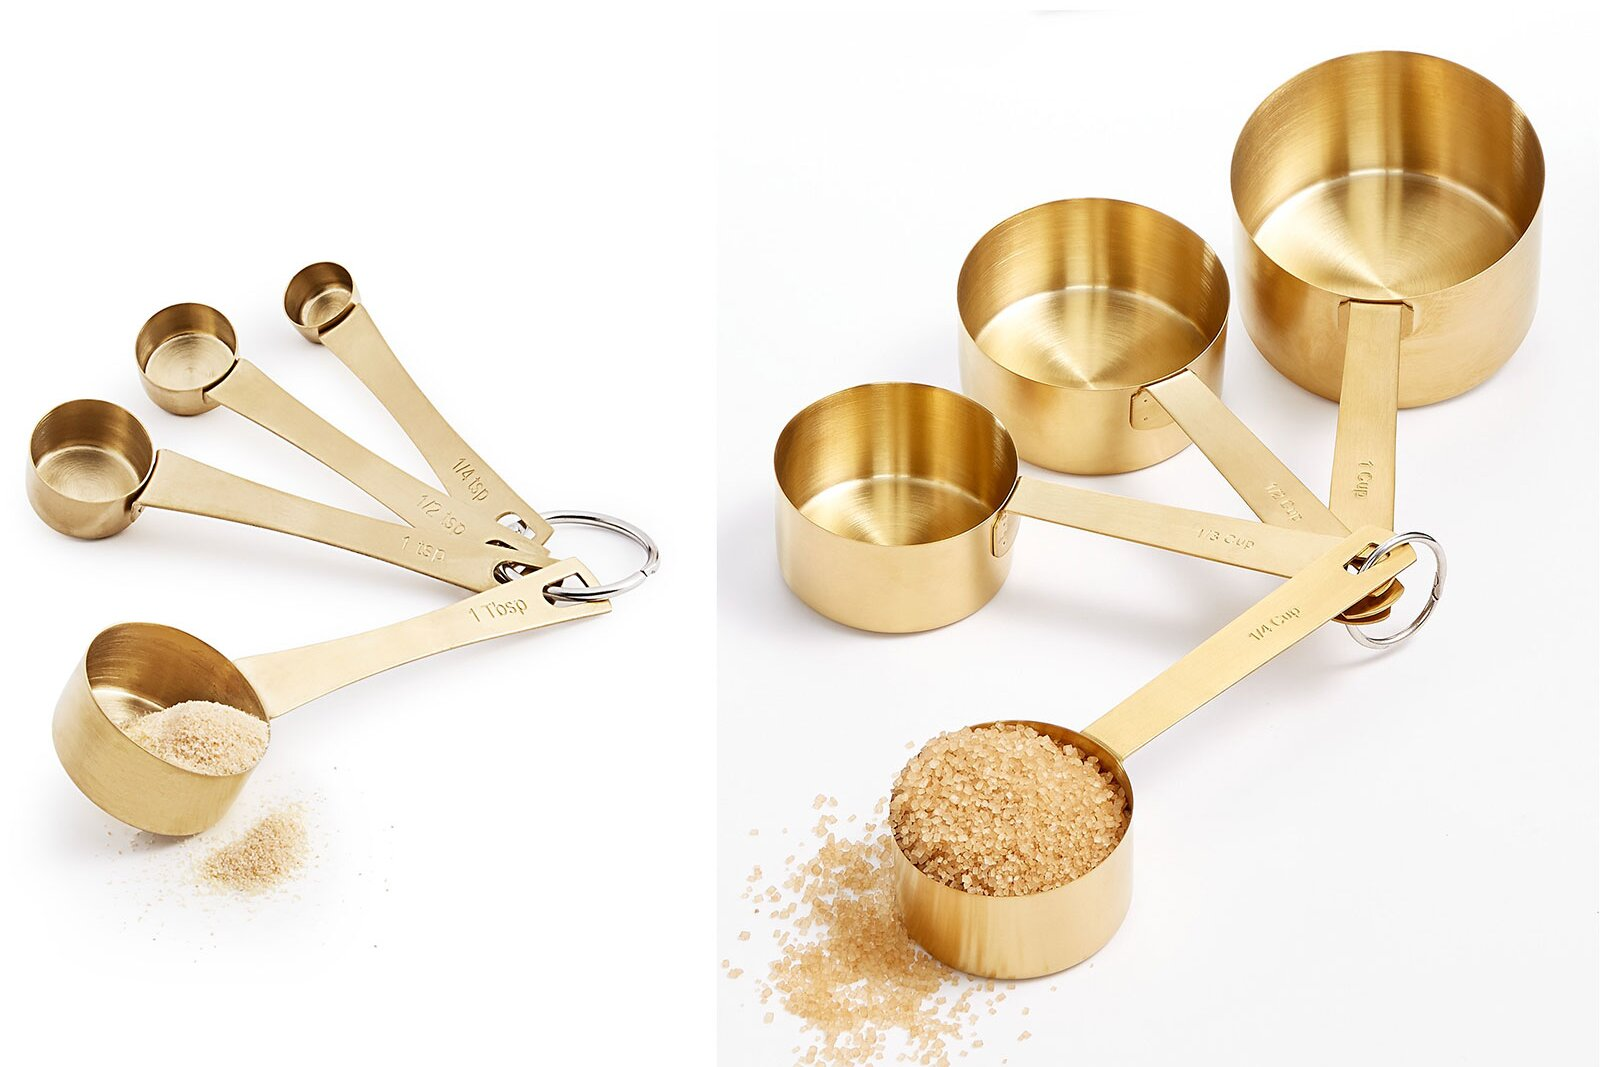 Measuring Cups and Spoons 15 must have kitchen tools for beginner cooks